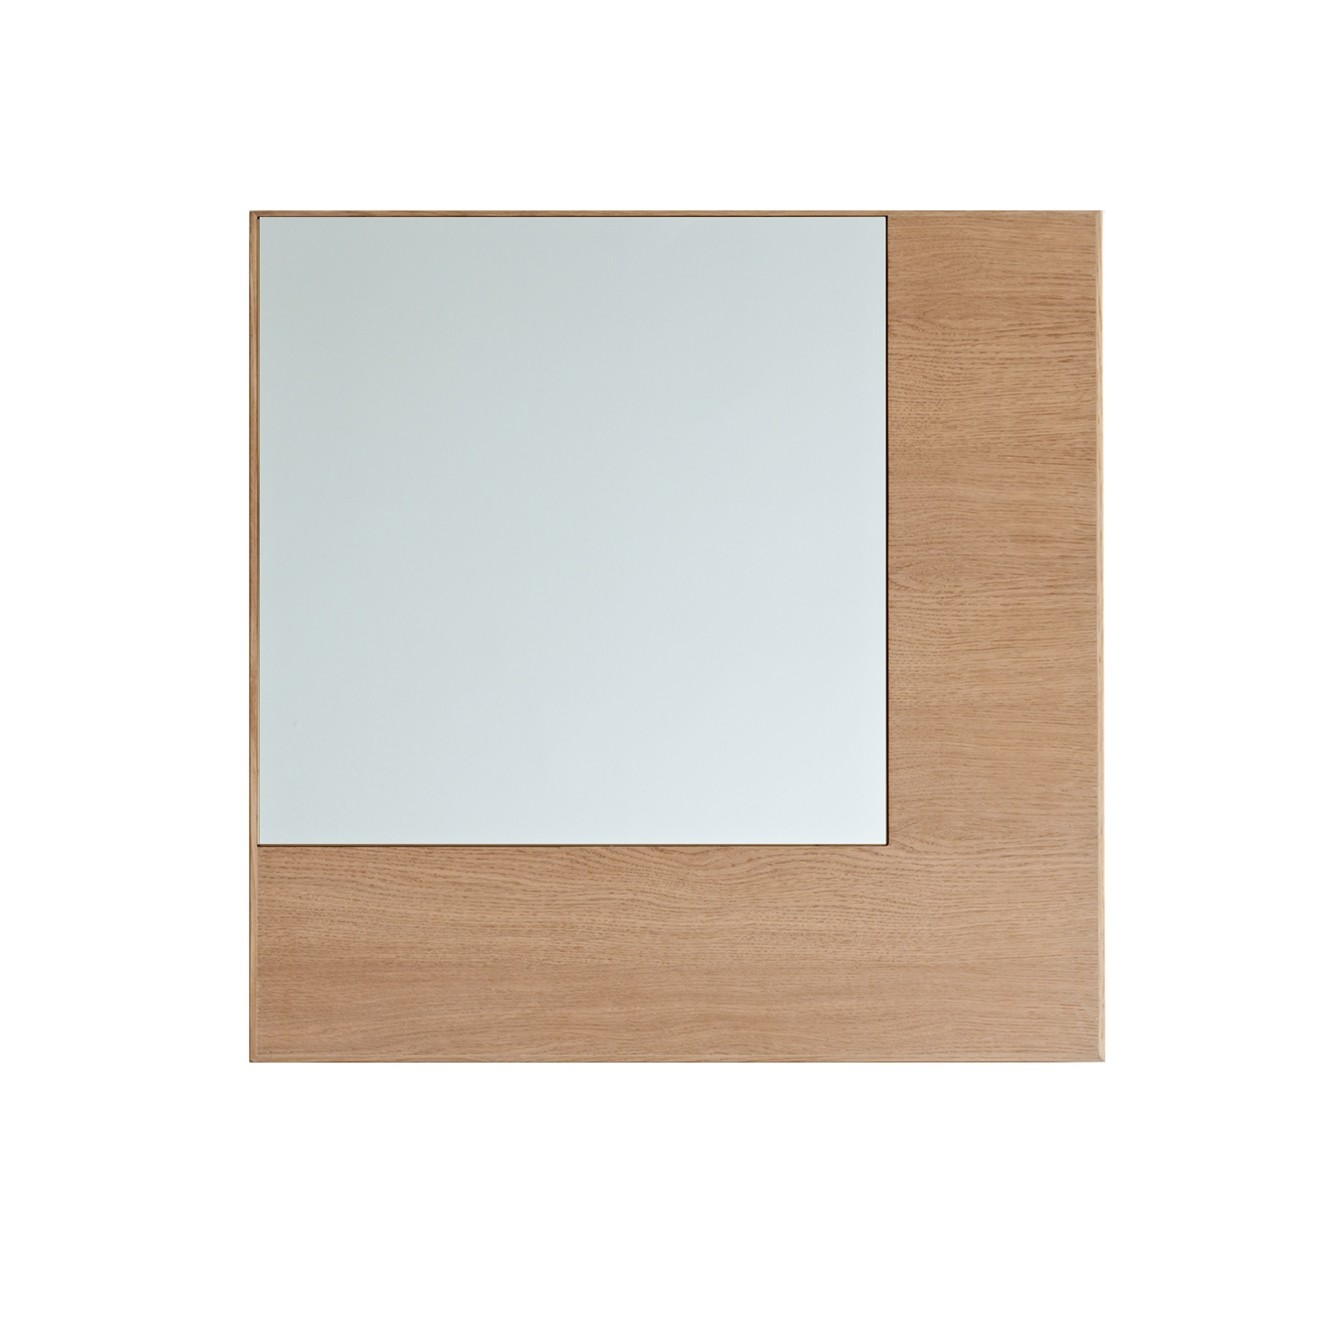 Offset Mirror Square Clear Mirror, Oak